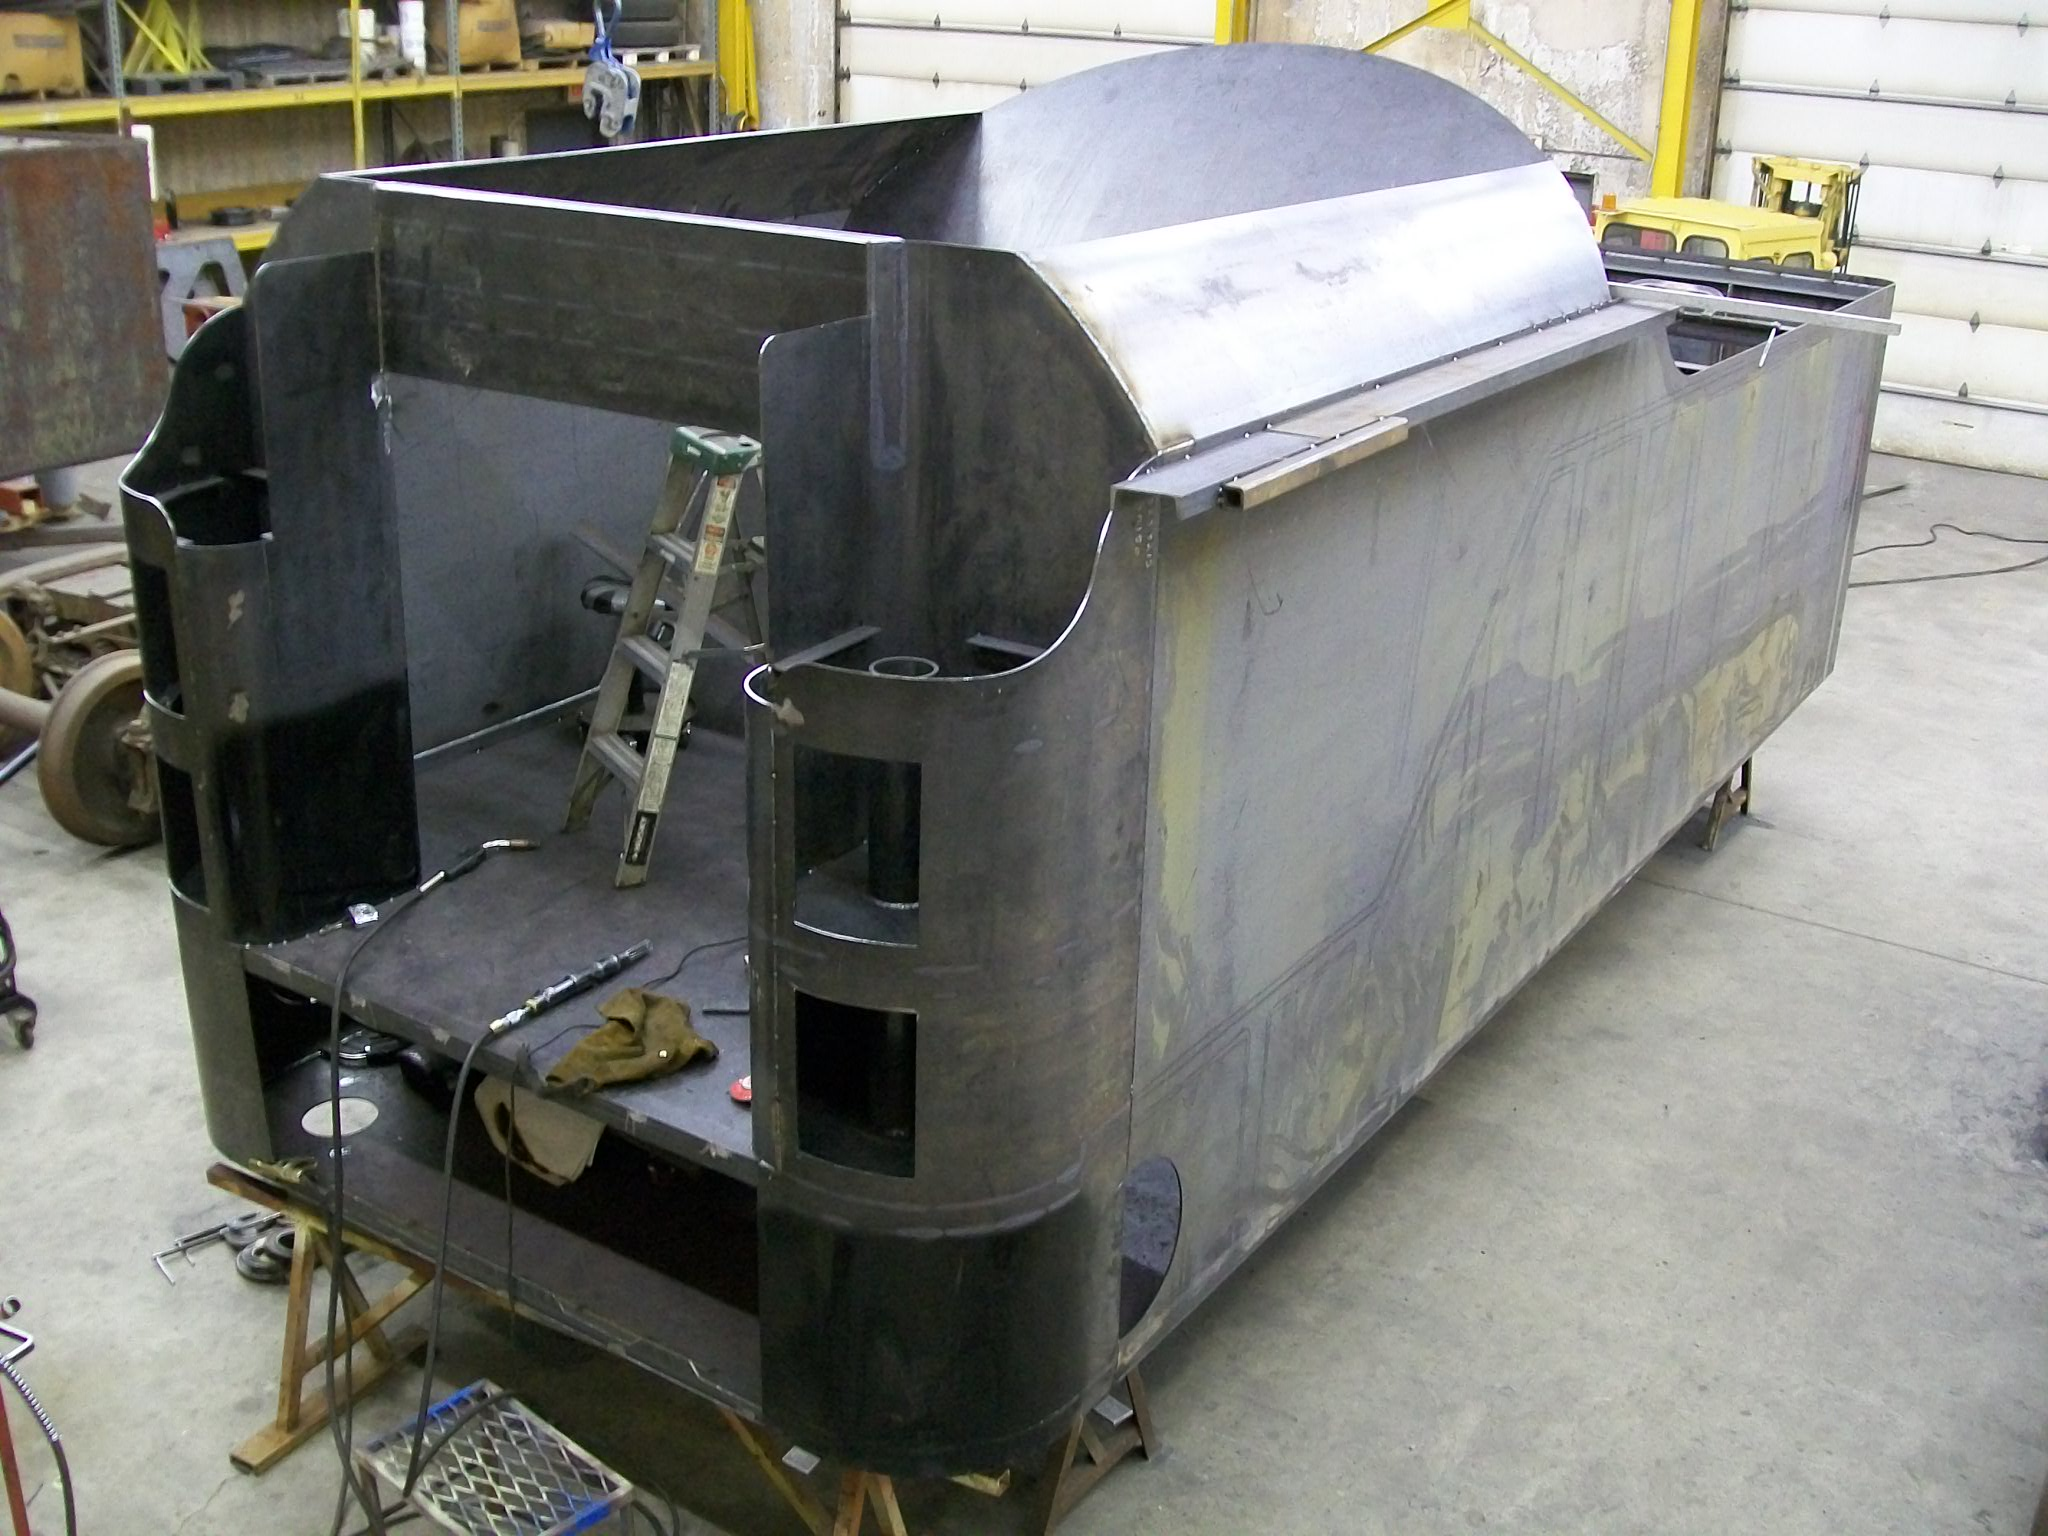 New C&NW 1385 tender tank under construction at DRM Industries. March 2, 2012. Photo by DRM Industries